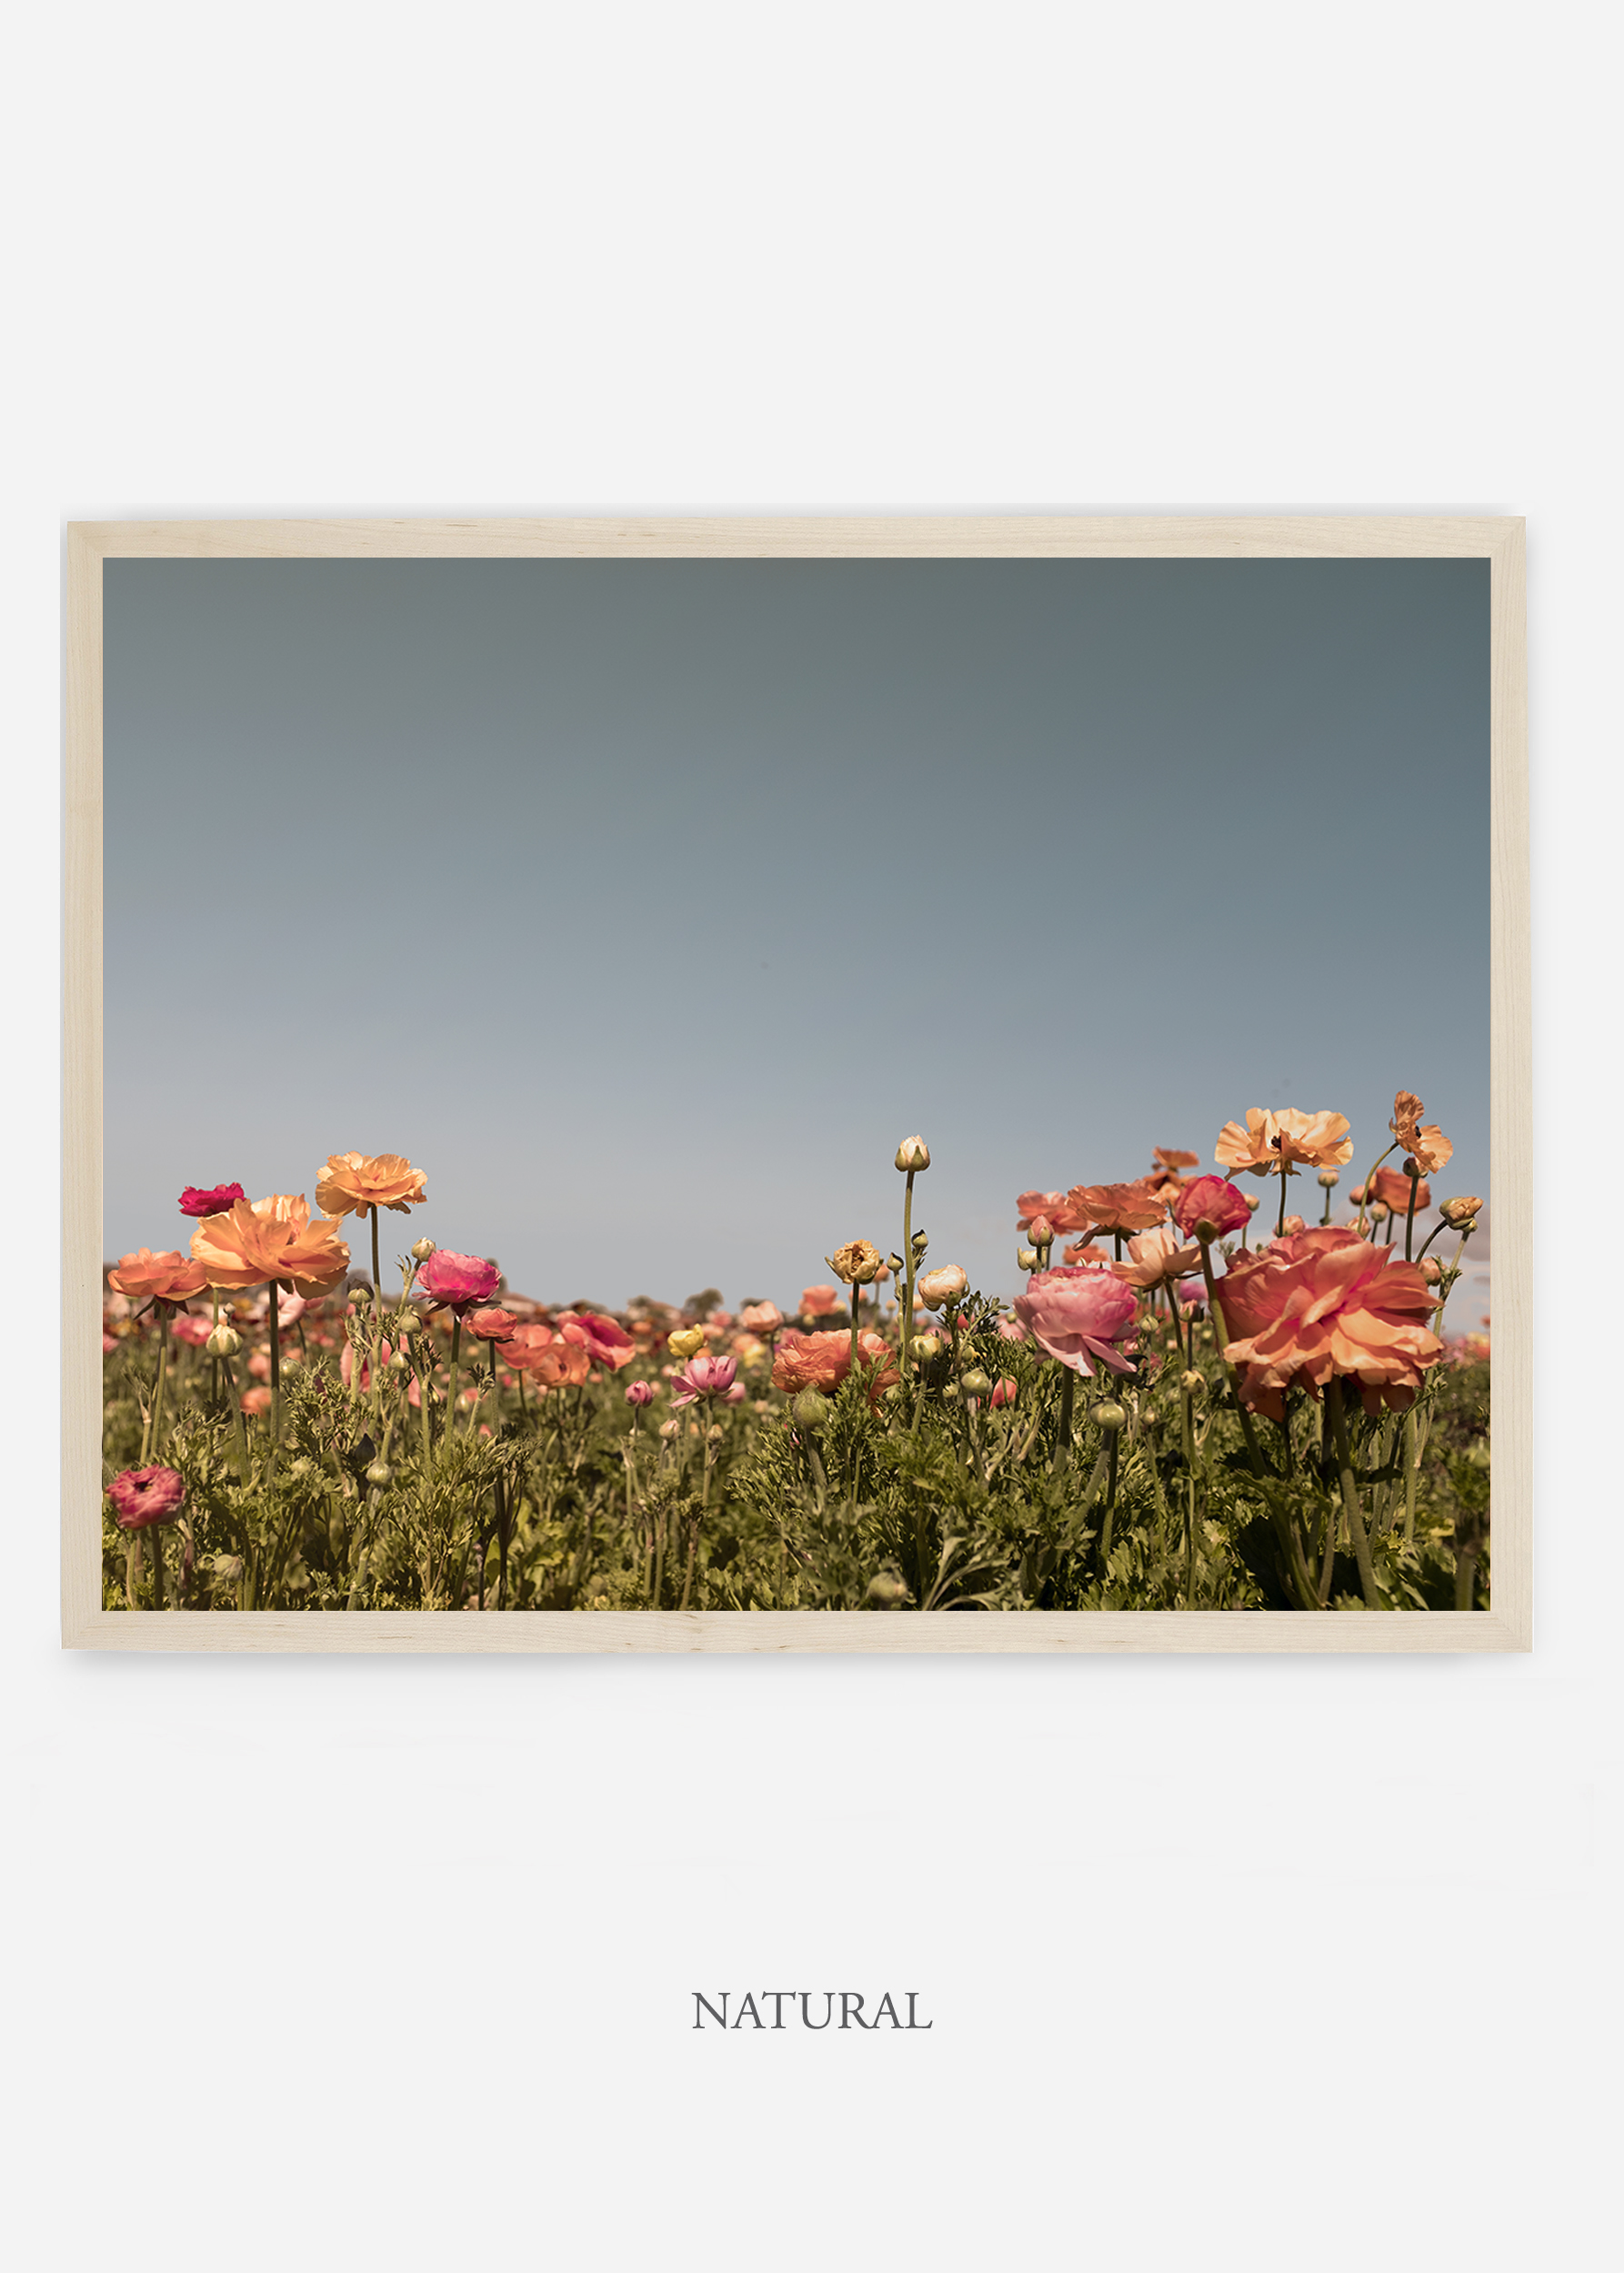 NoMat-Natural-Frame-Floral-5--Wilder-California-Art-Floral-Home-decor-Prints-Dahlia-Botanical-Artwork-Interior-design.jpg